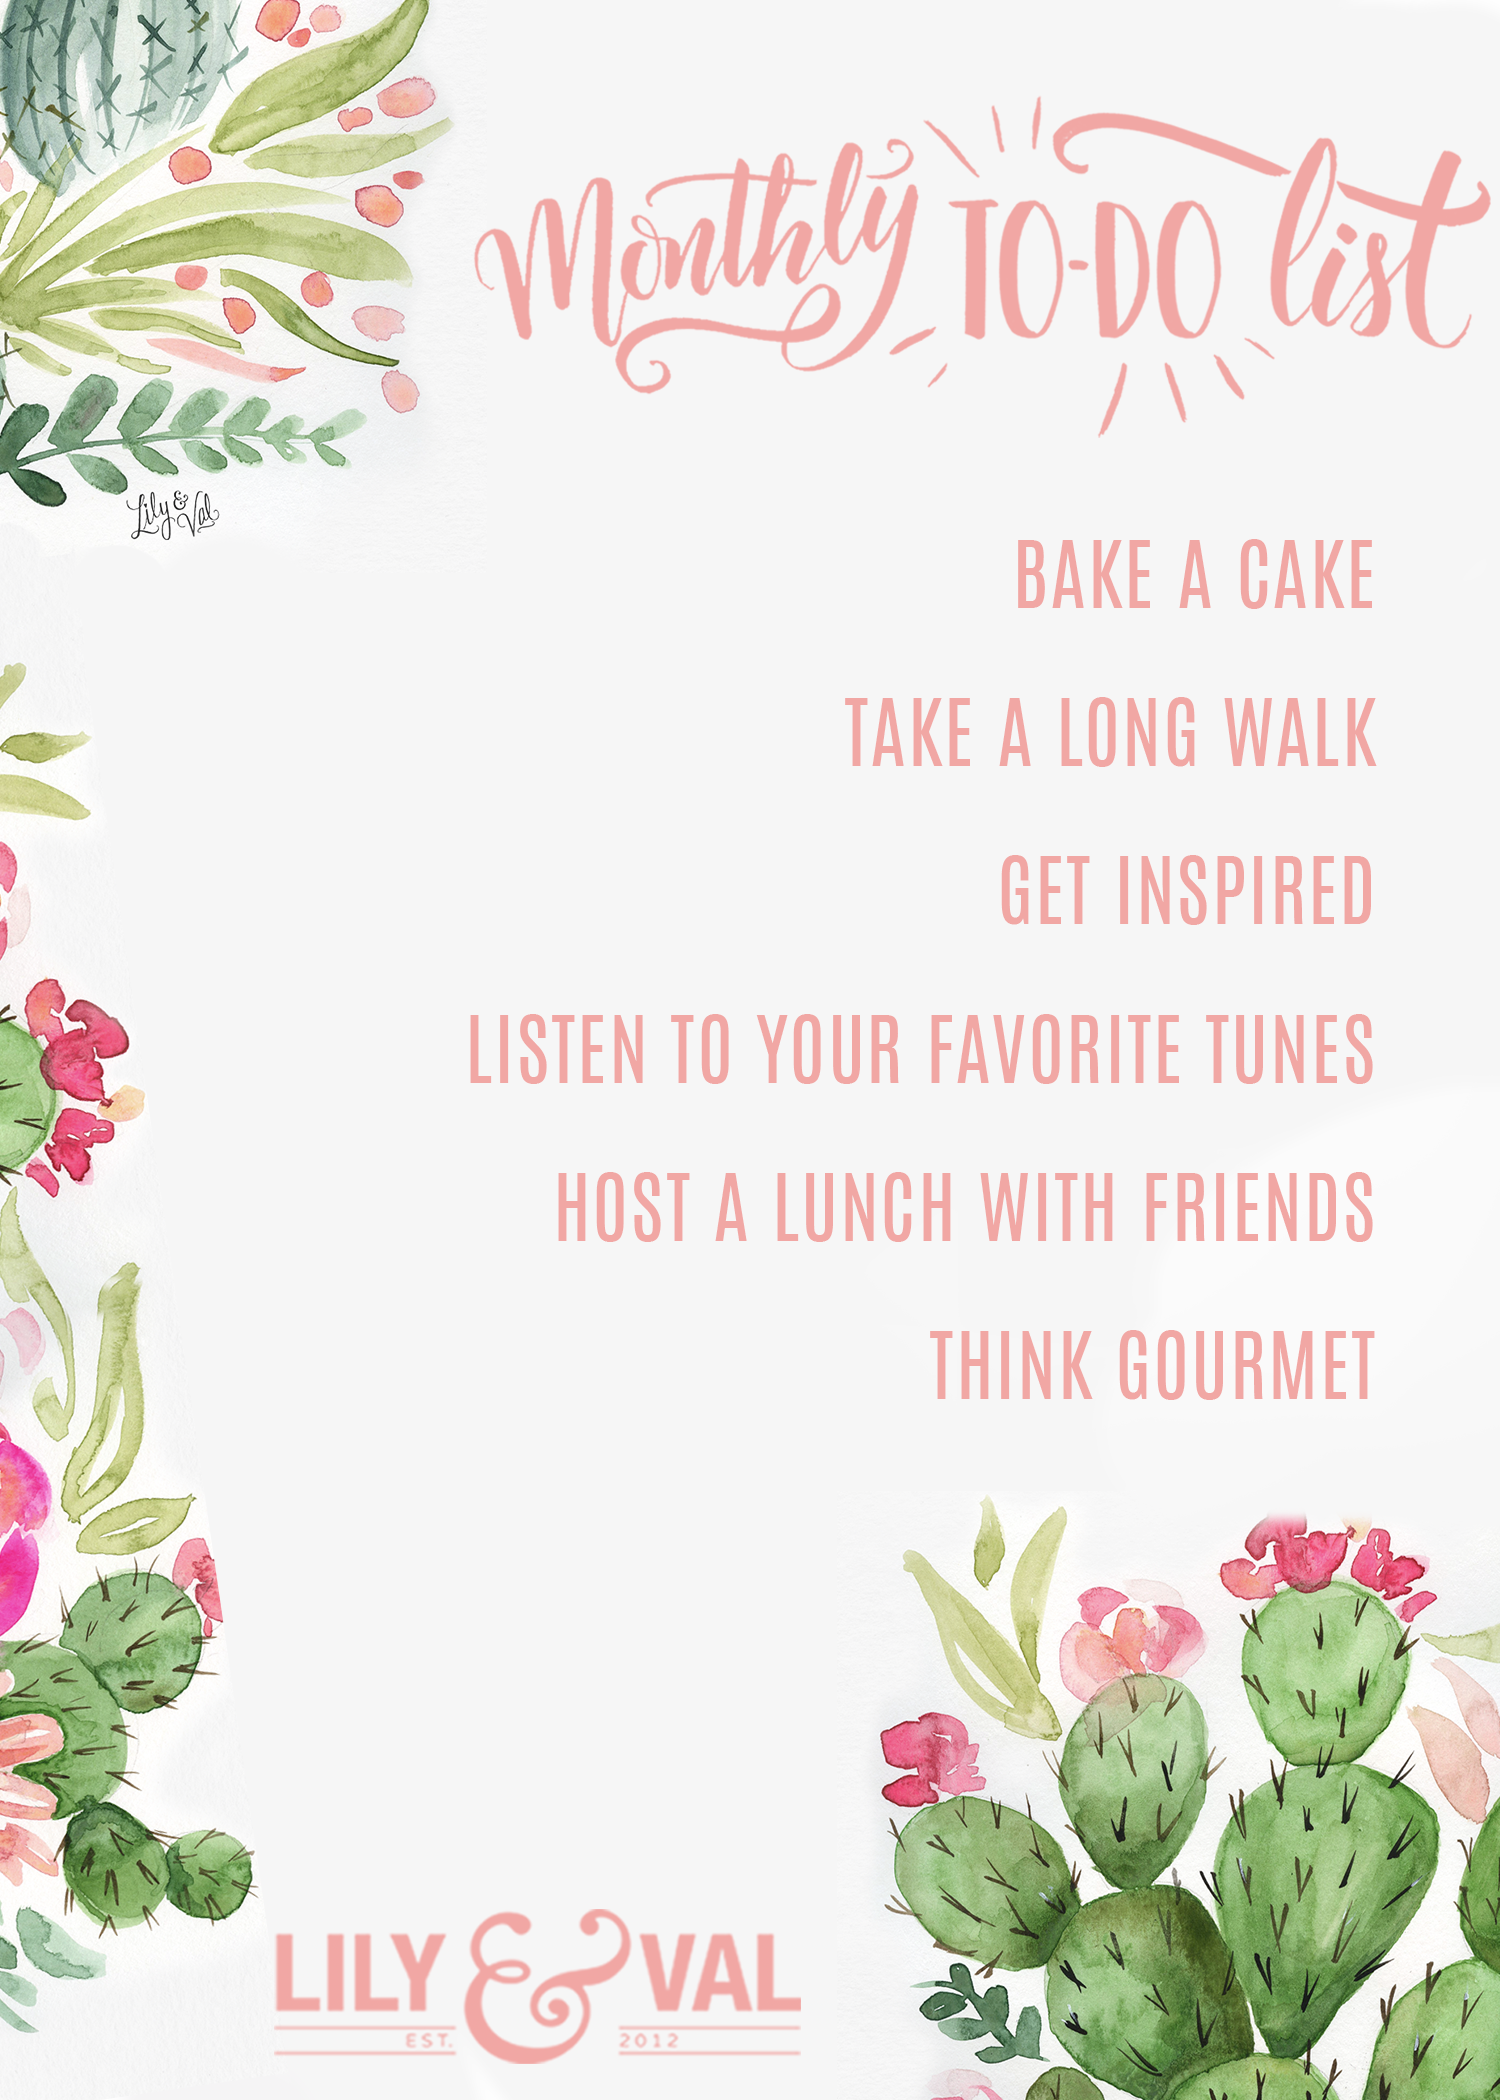 May Free Download - A Very Hygge Monthly To-Do List